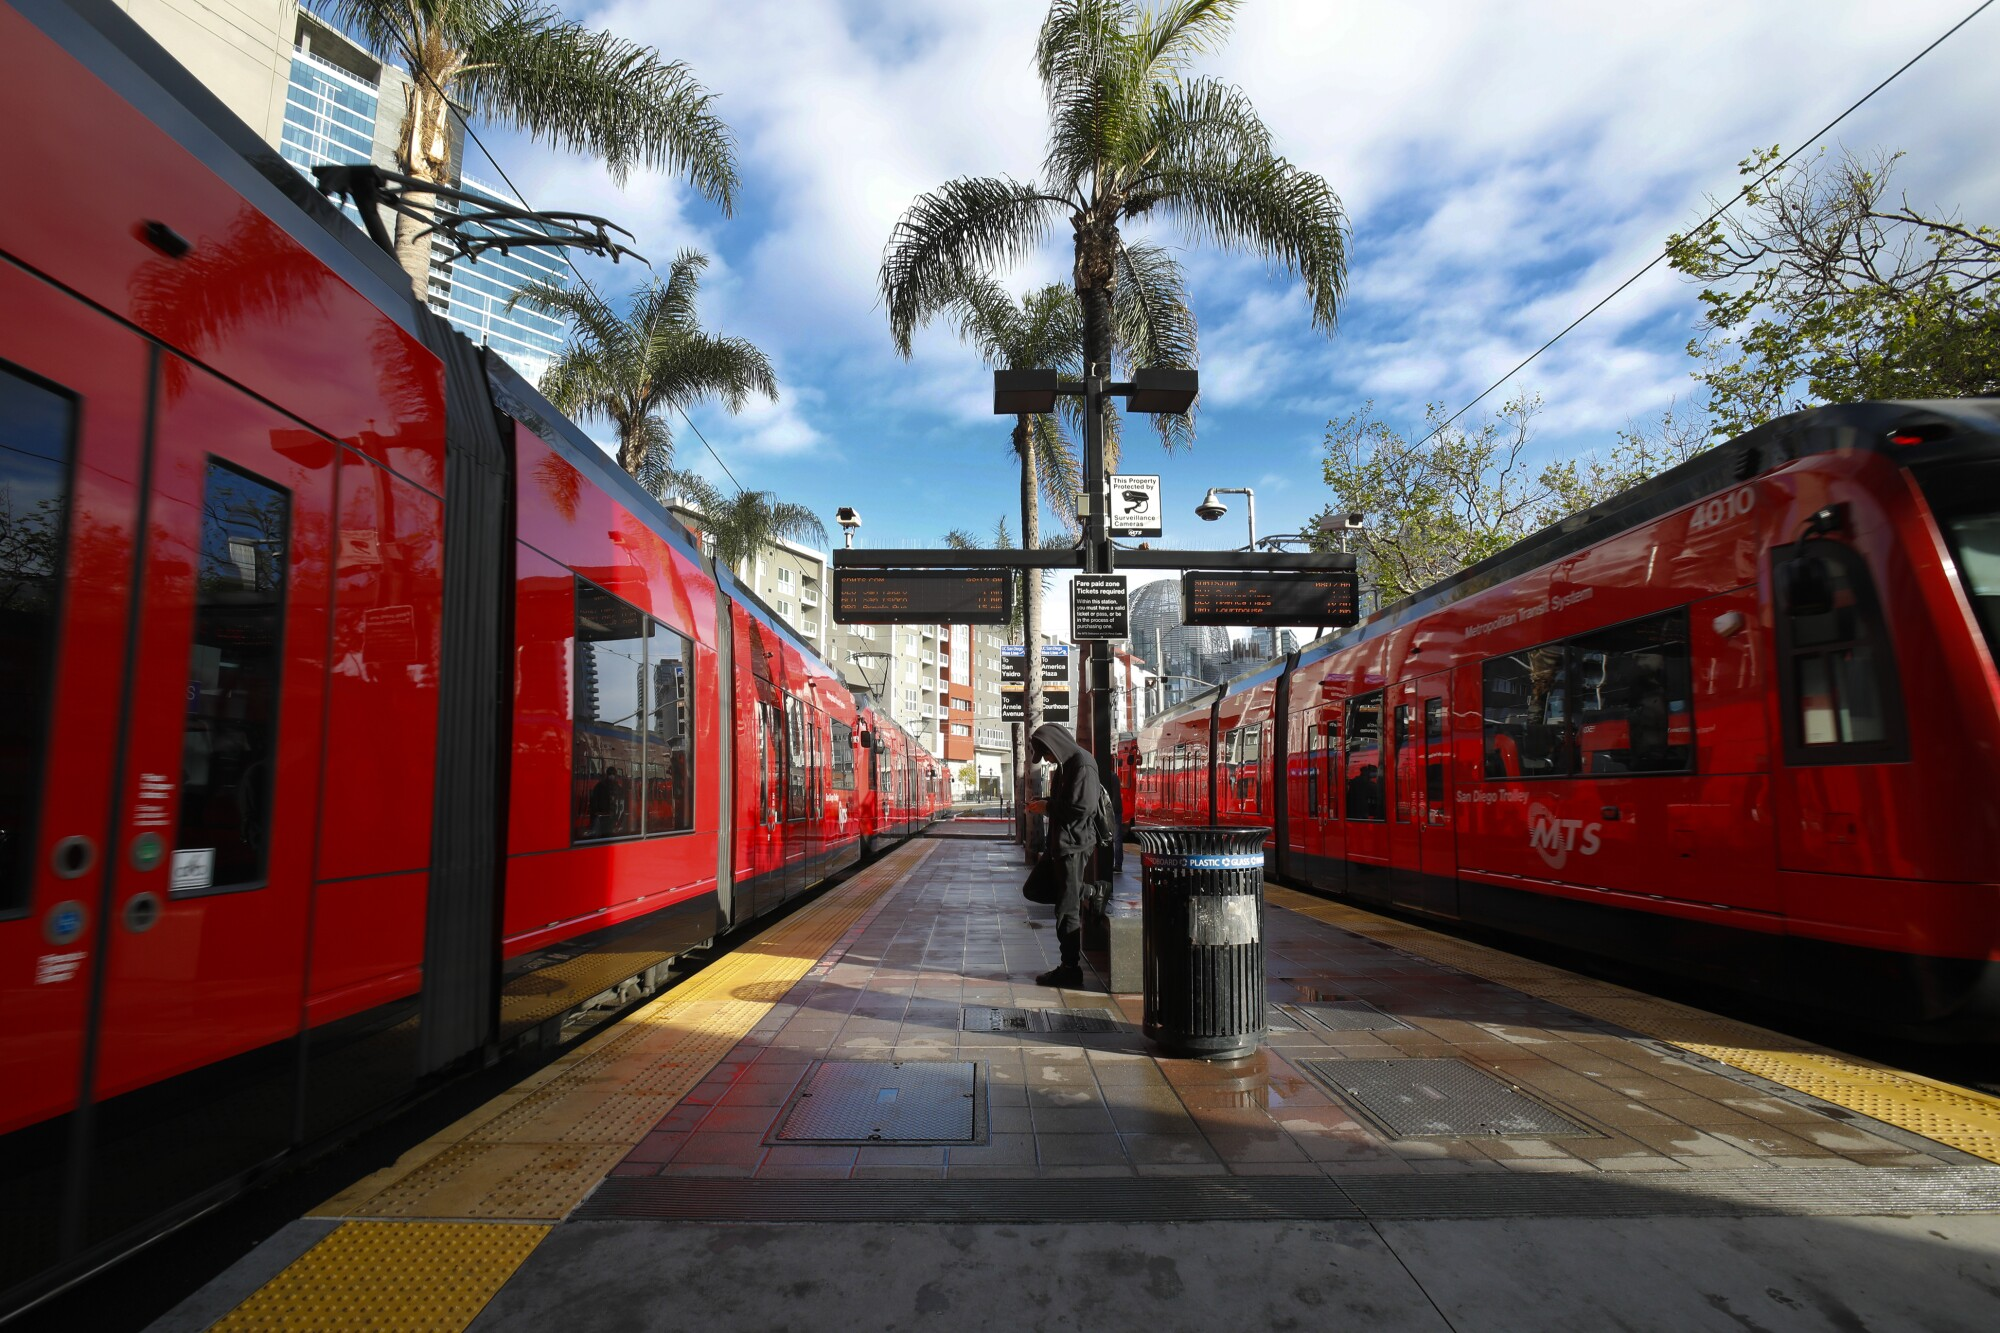 On Wednesday April 8, 2020, two almost empty trolley trains arrived and departed from the 12th and Imperial Transit Center in downtown, San Diego.